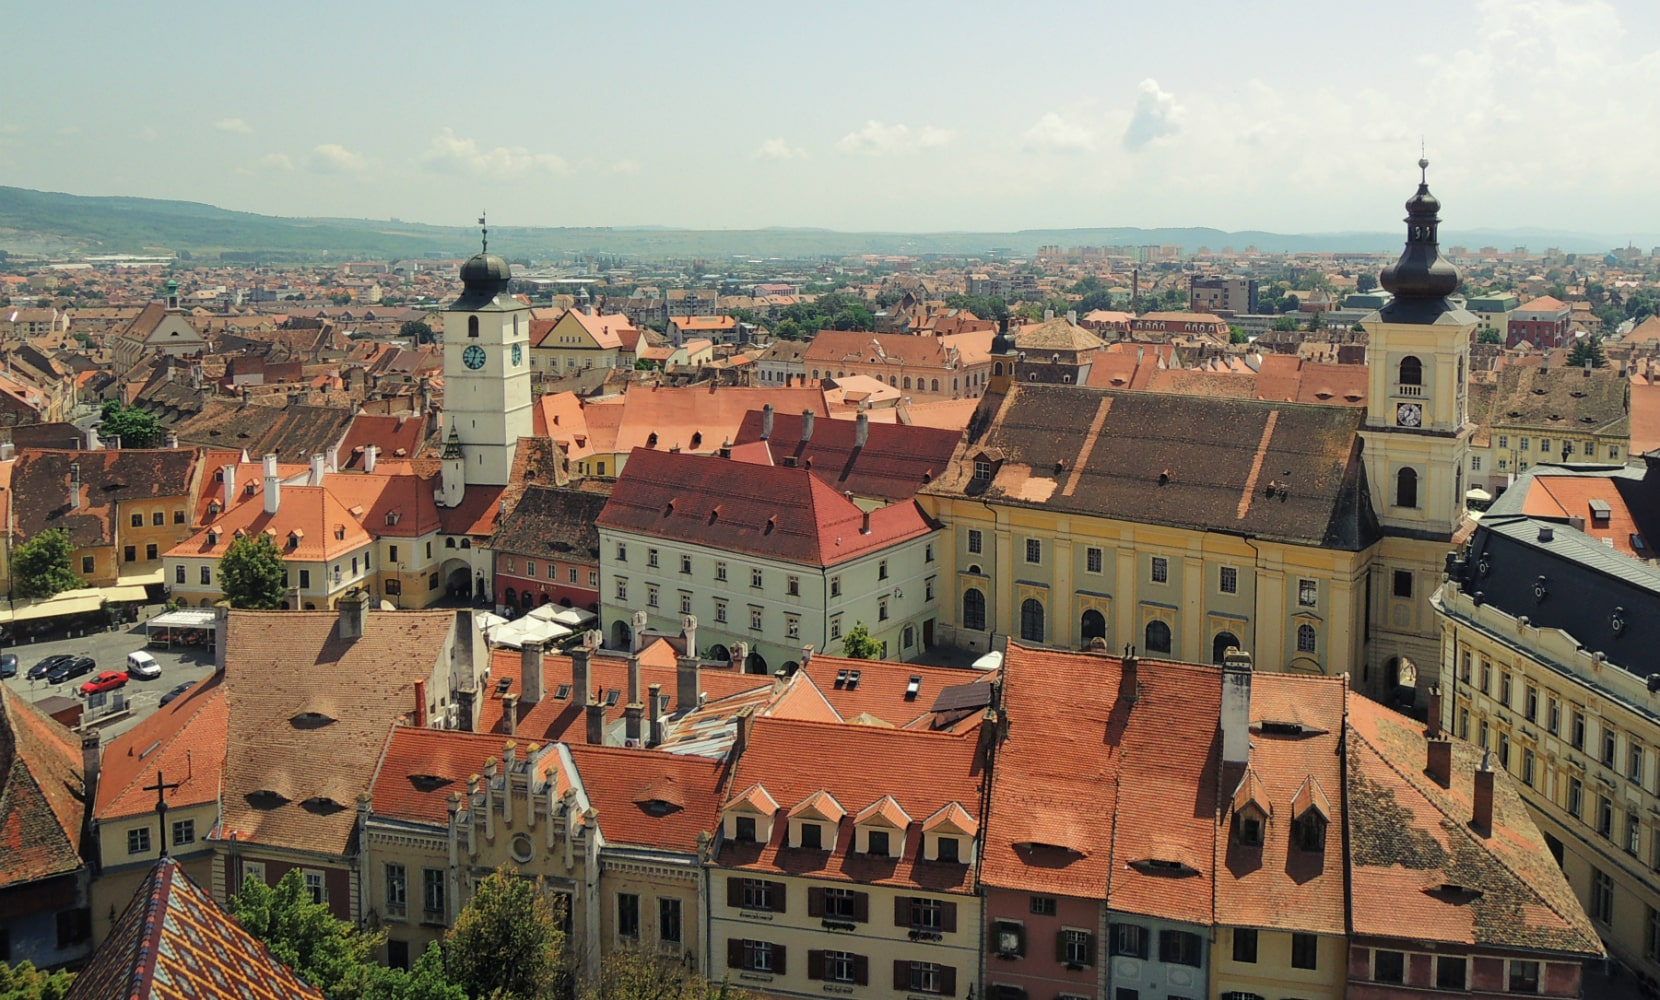 The hidden stories of the 7 towers of Sibiu image